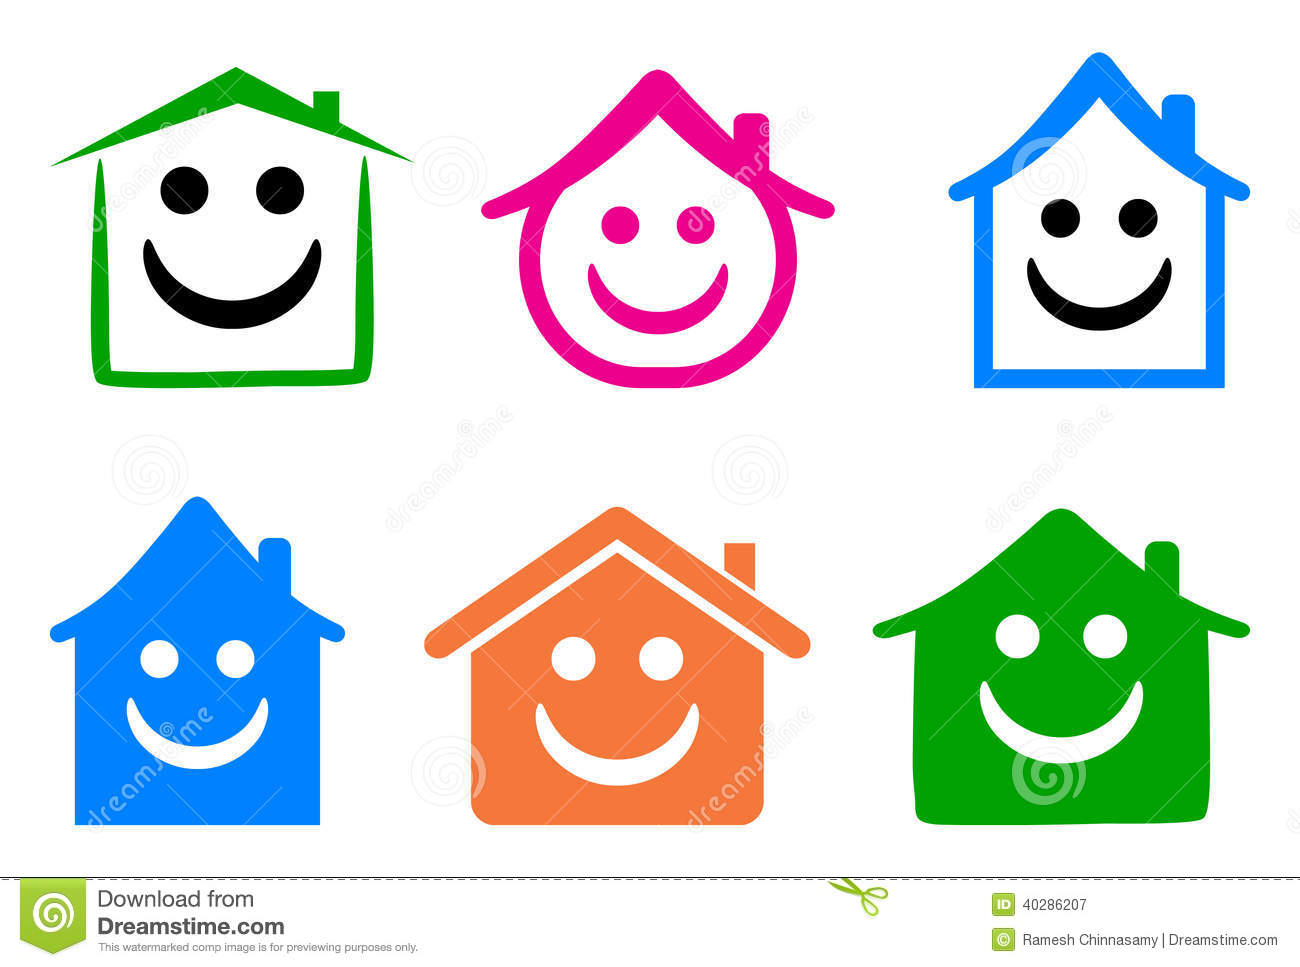 Happy Home Stock Vector - Image: 40286207 Simple Eye Clipart Black And White